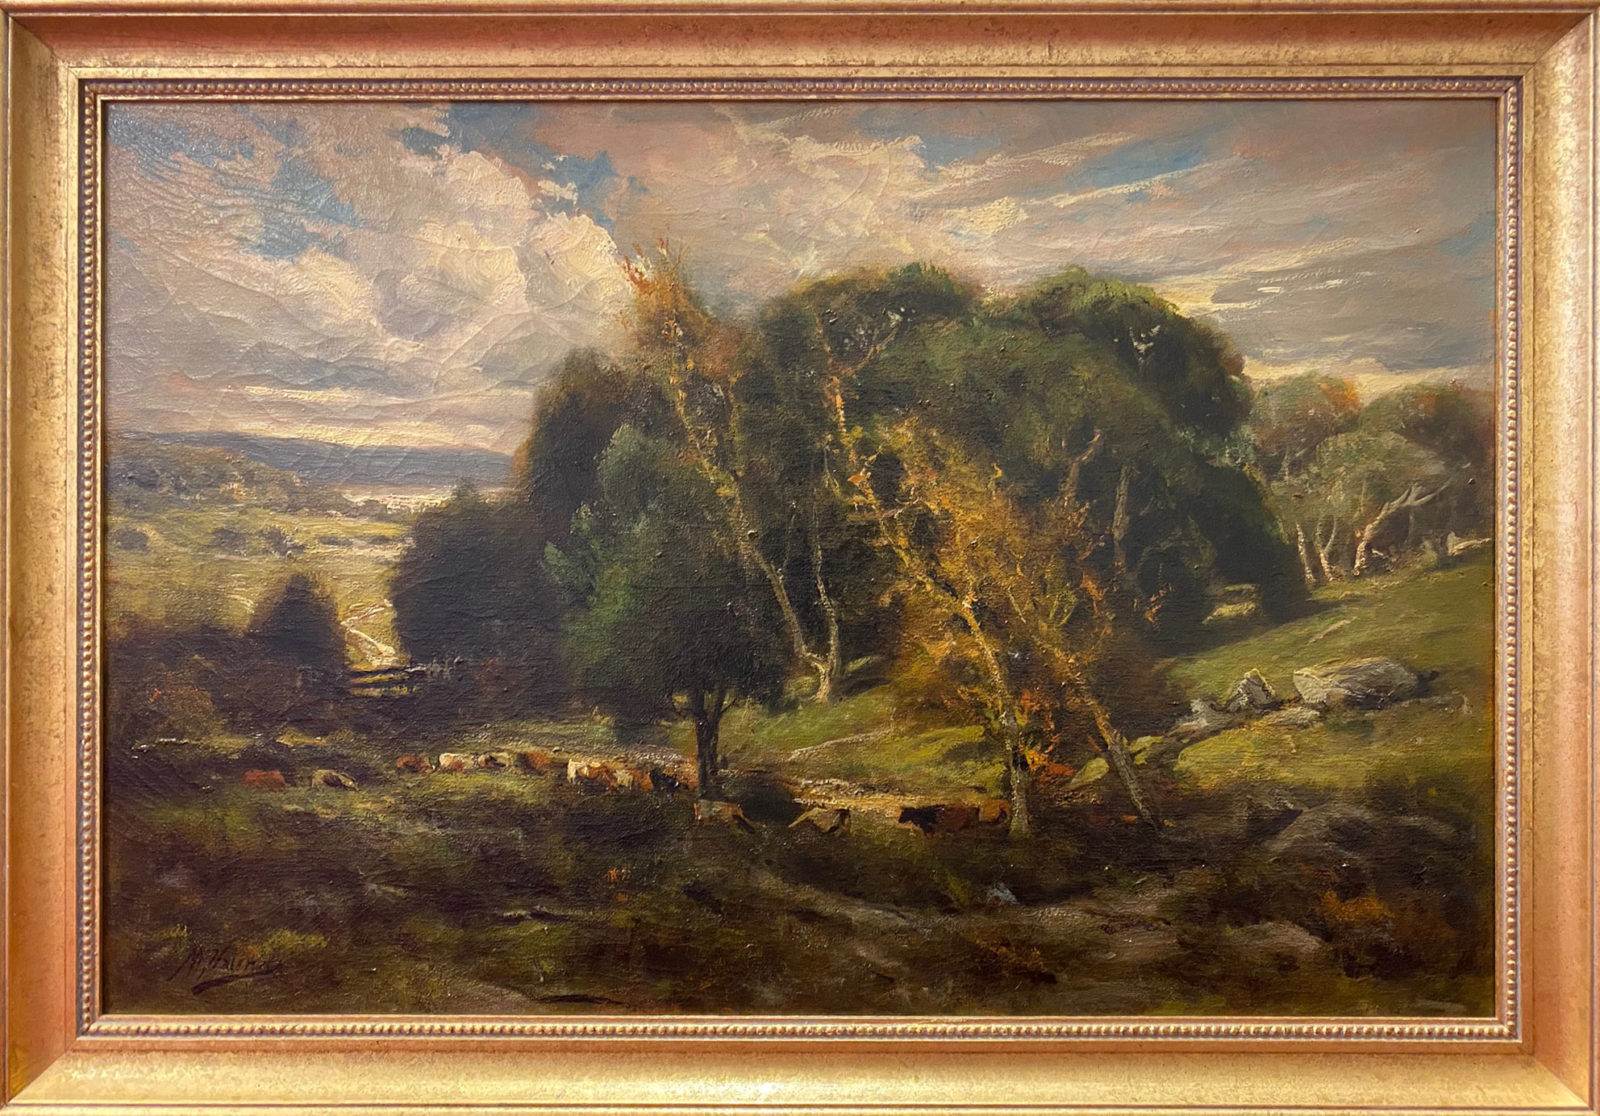 Recent Acquisition Highlights  - 2016 - 2021